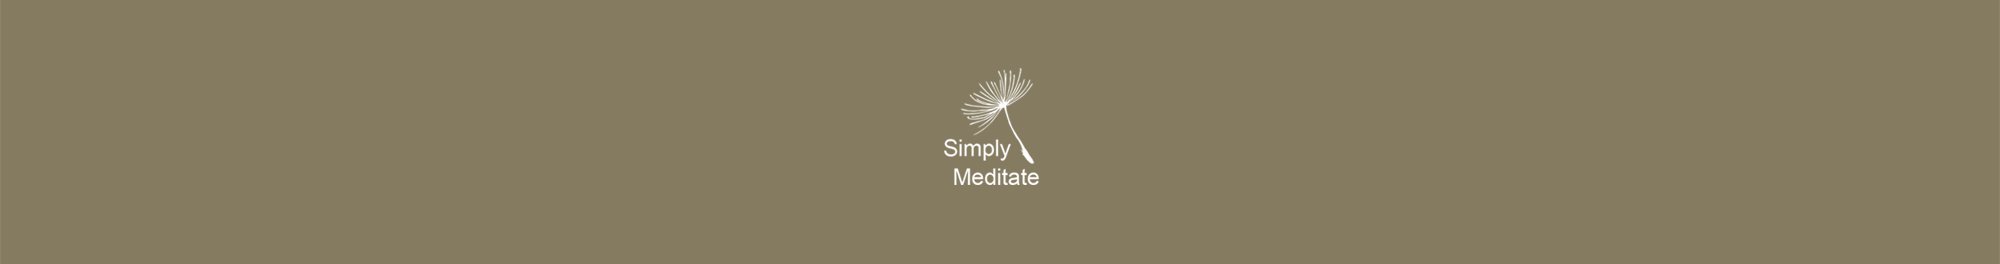 Simply Meditate Nondual Meditation and Stress Removal